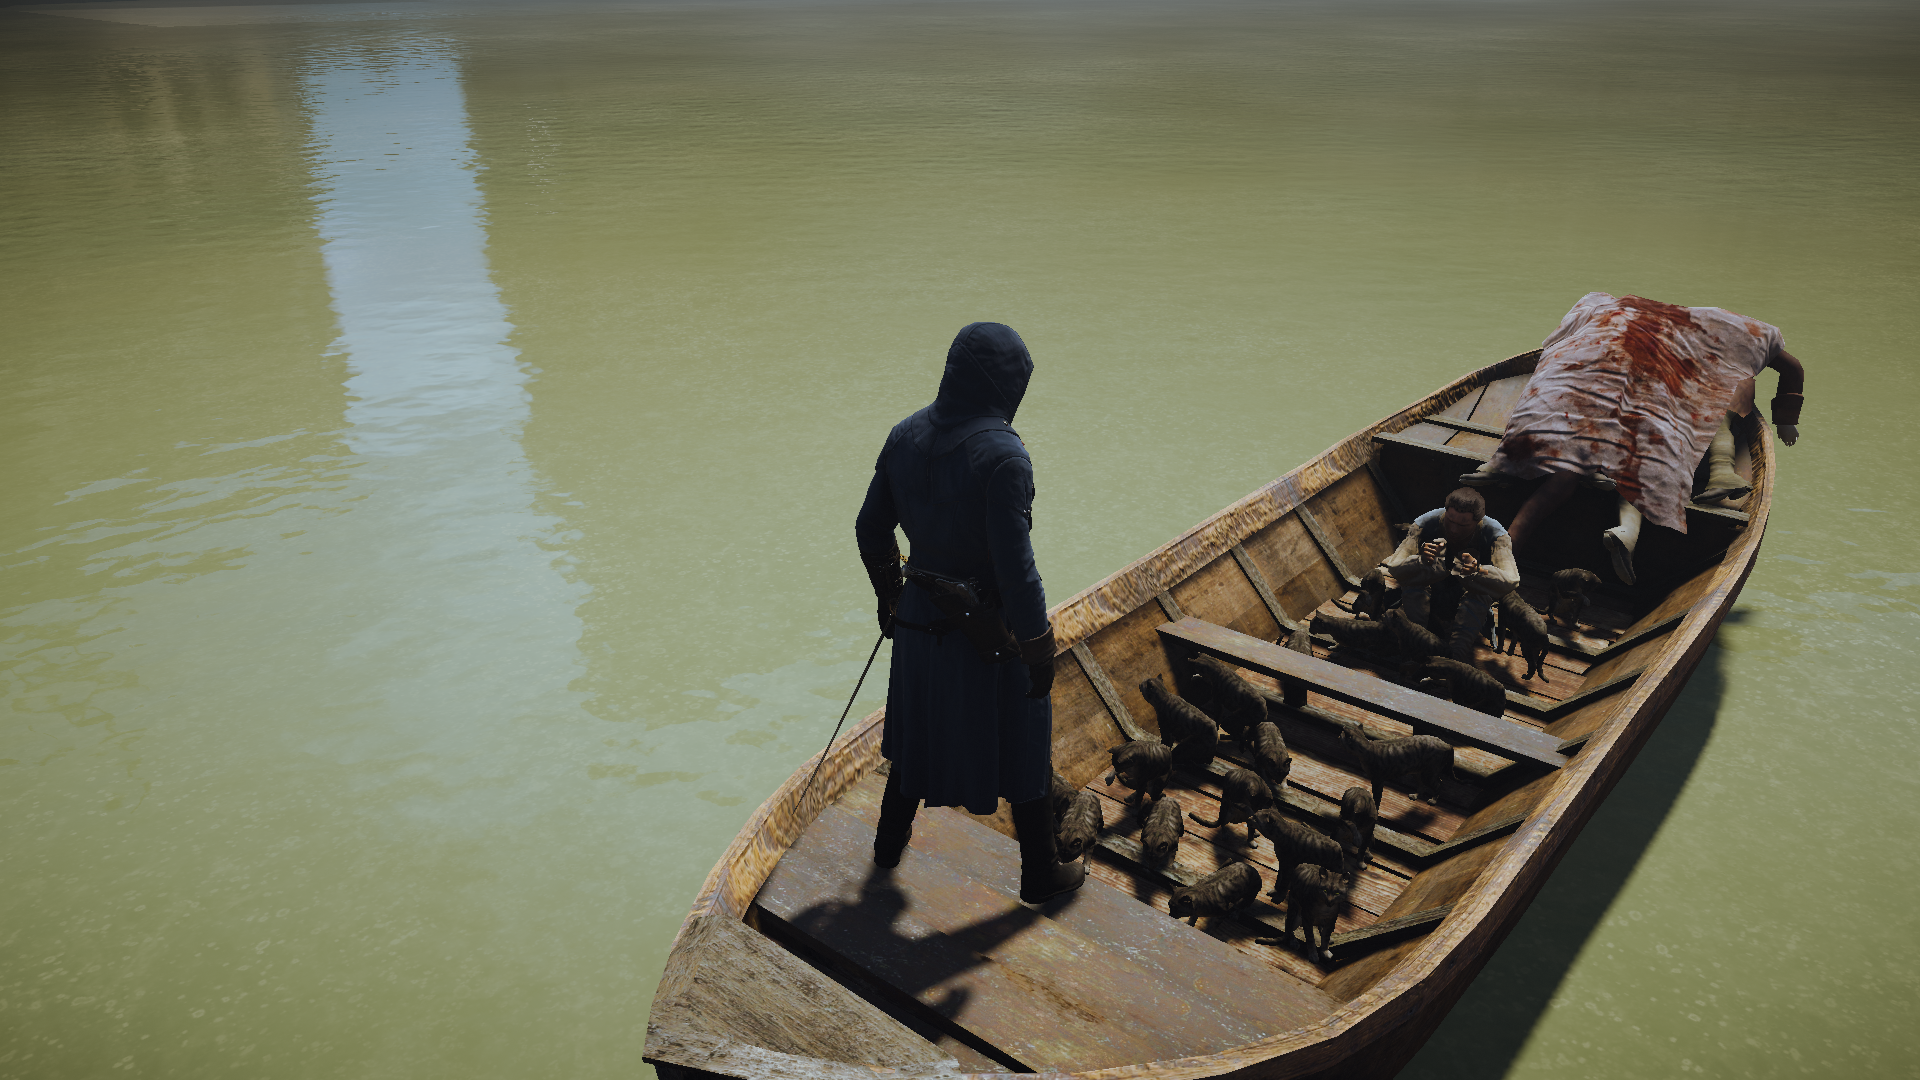 Easter eggs | Assassin's Creed Wiki | Fandom